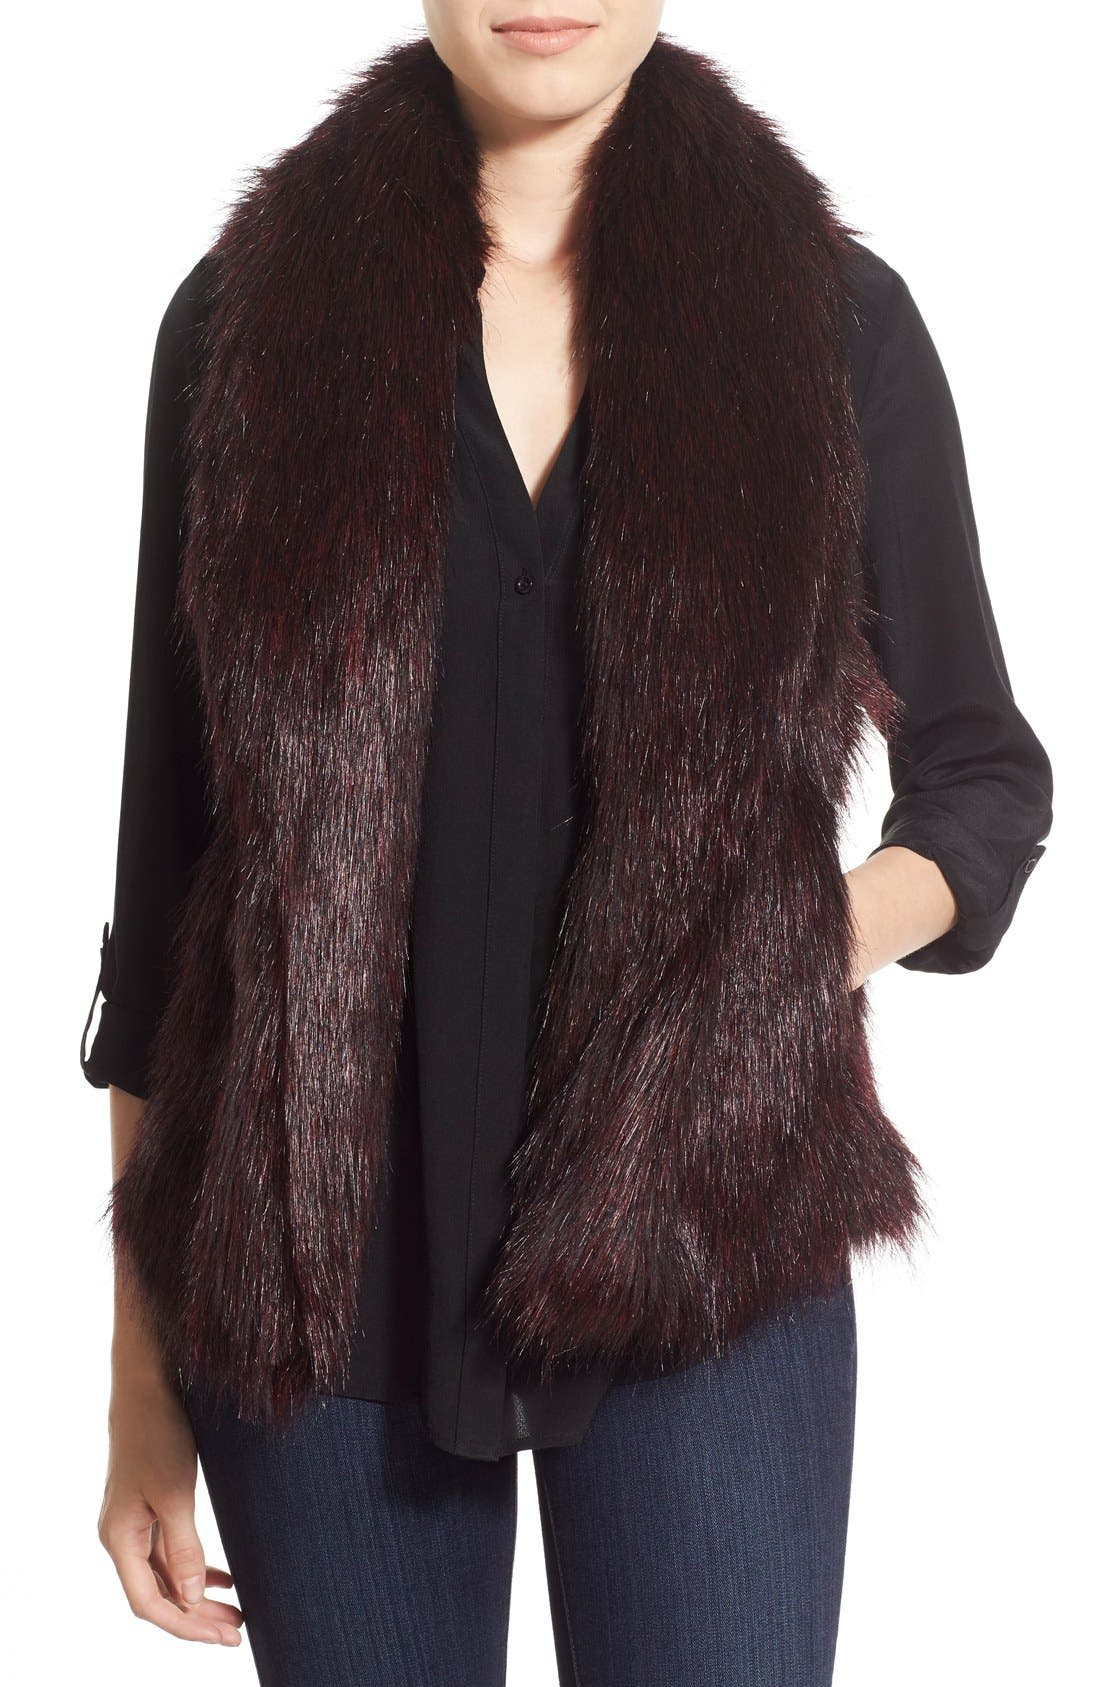 'Emily' Faux Fur Vest,                             Main thumbnail 1, color,                             505